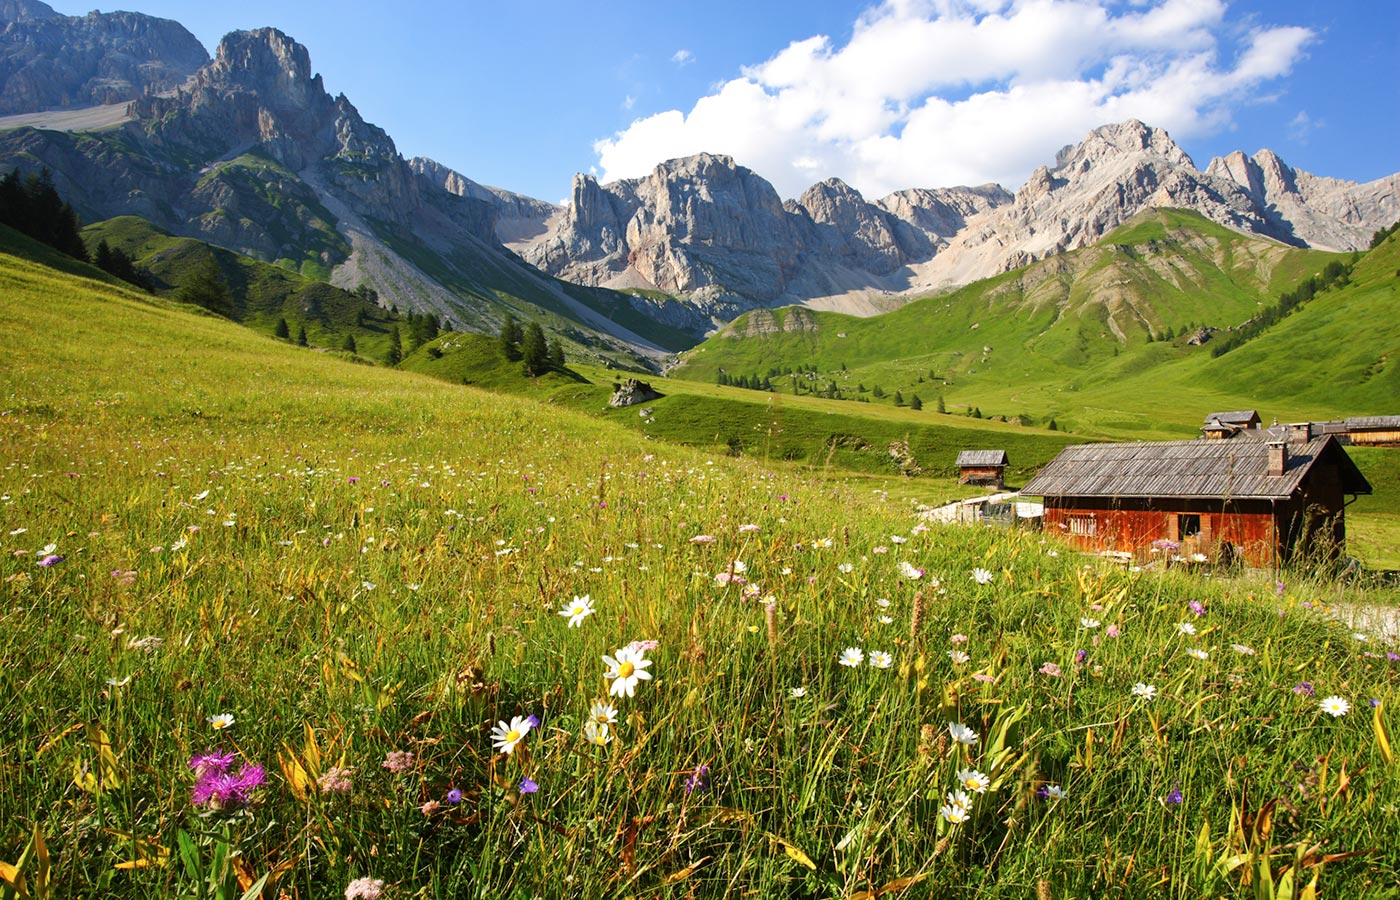 Typical traditional wooden house on meadow with flowers of the Val di Fassa